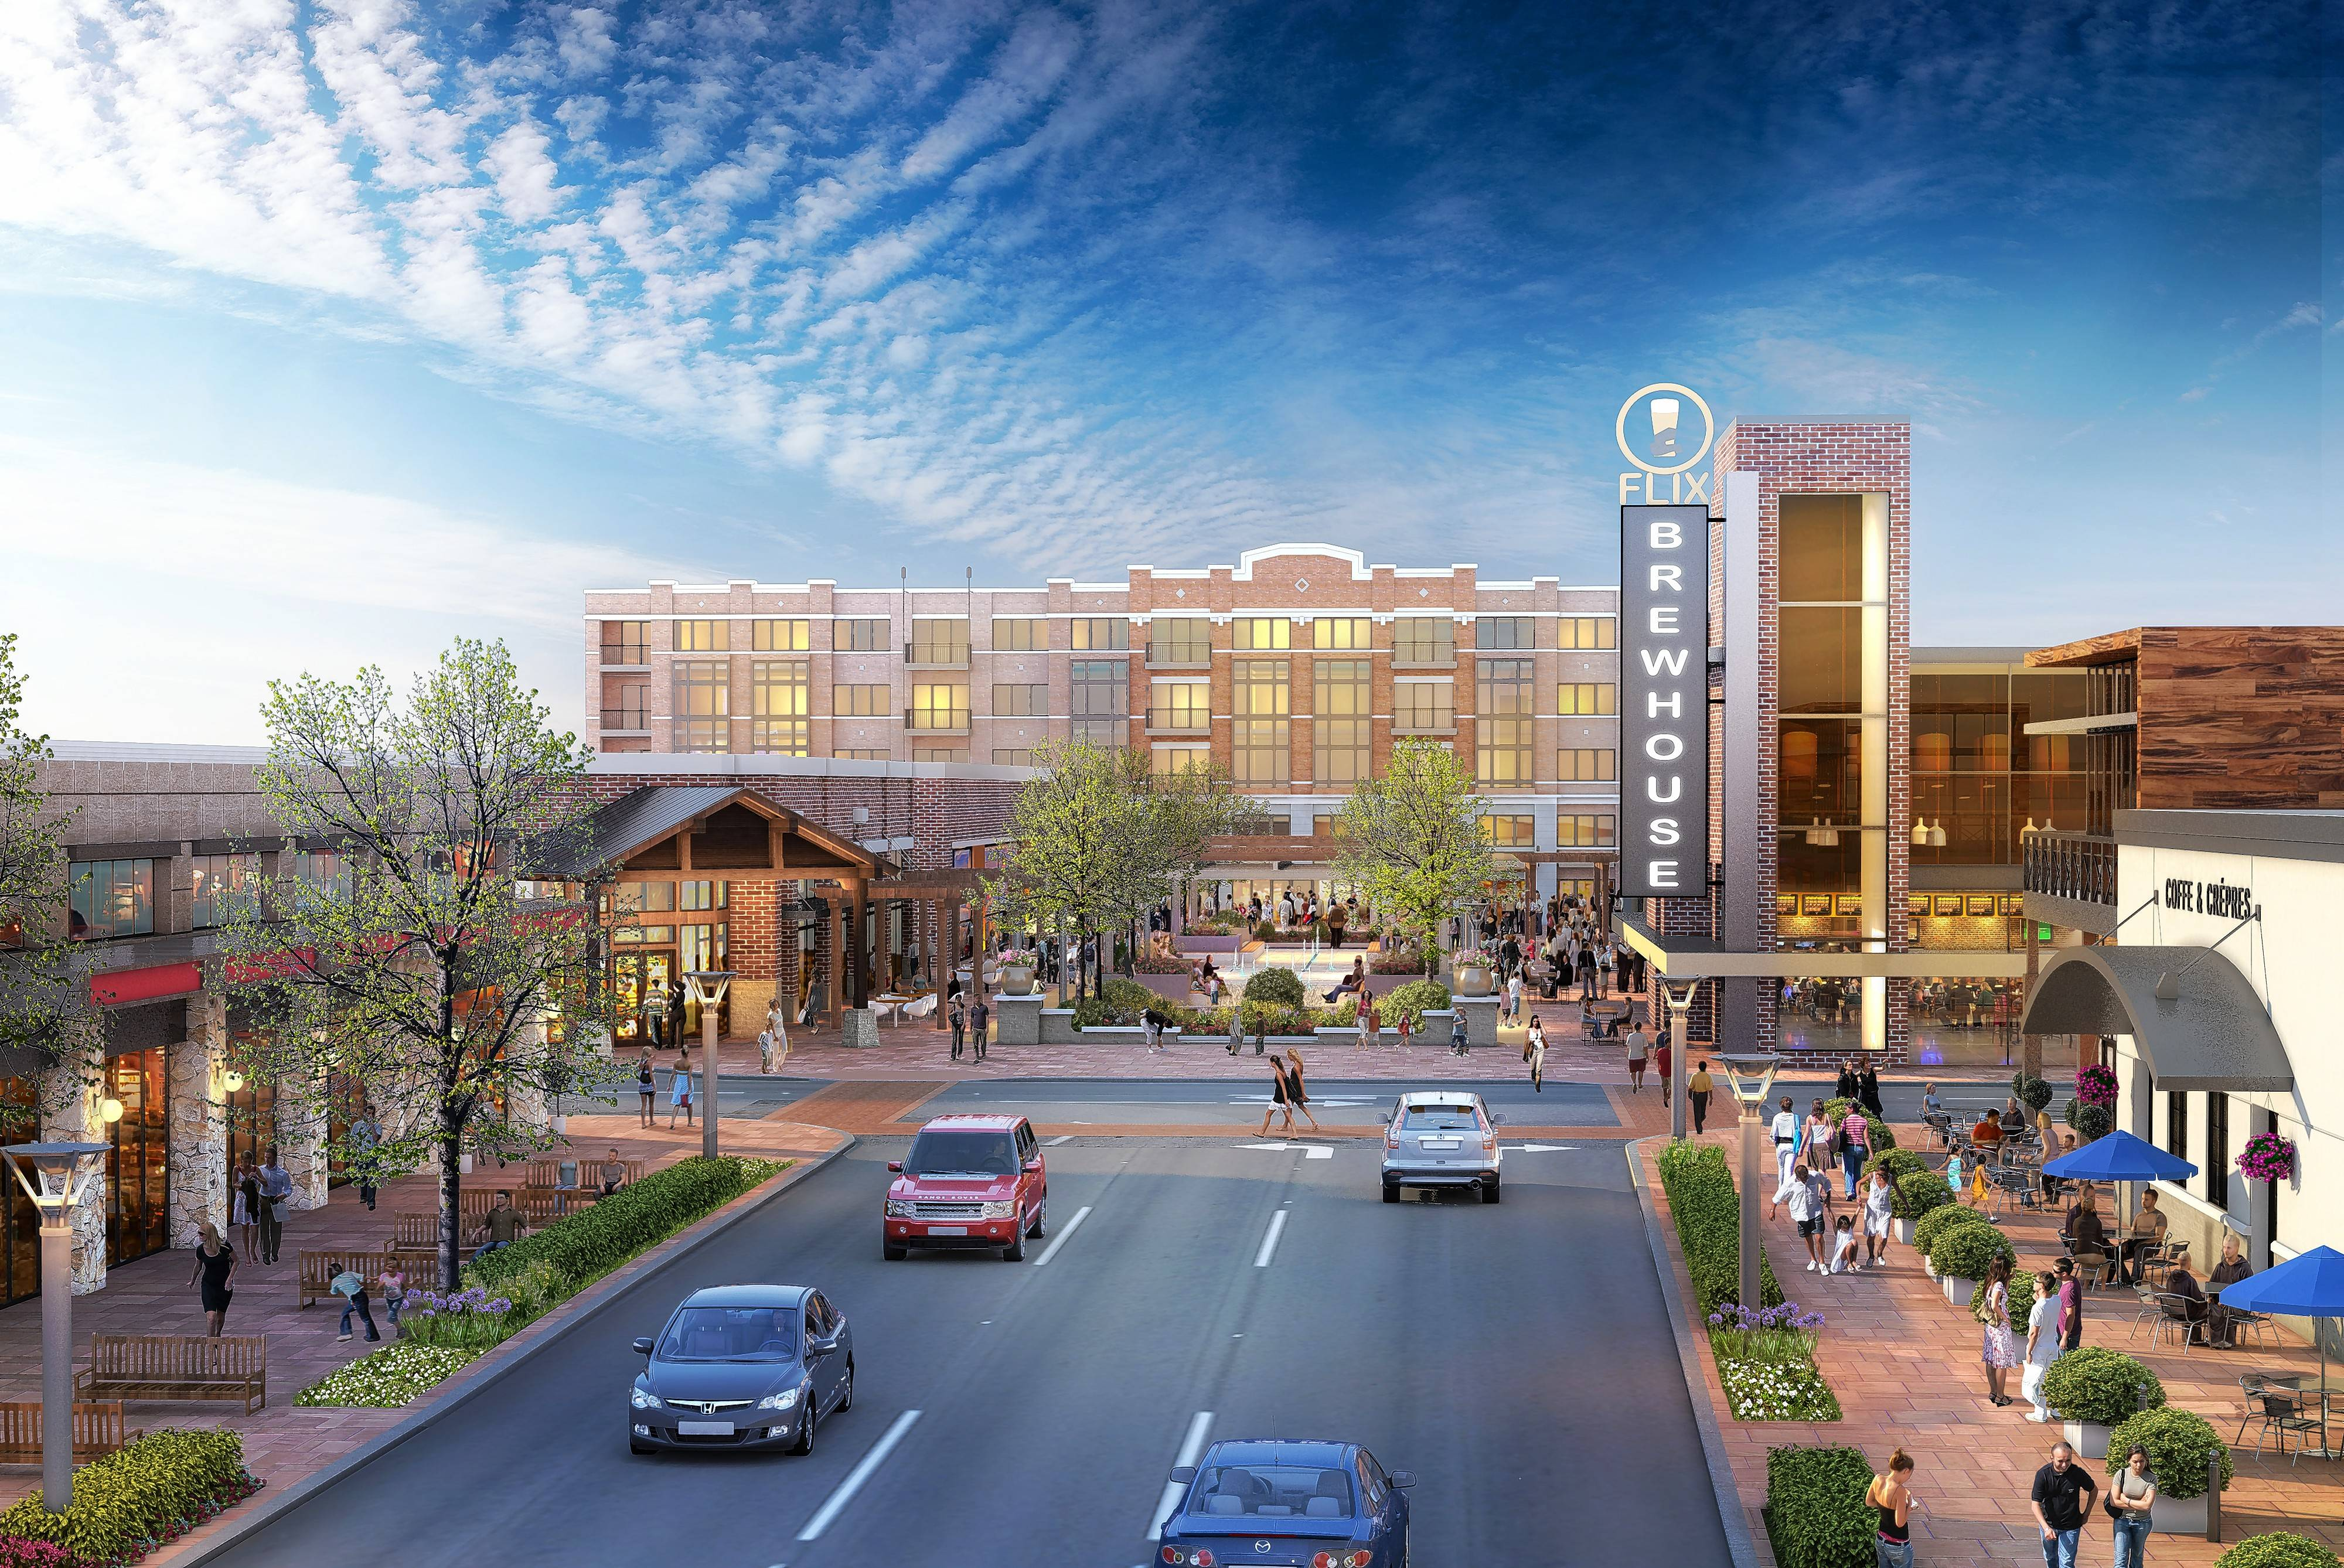 "Wheeling's Town Center project proposed near the intersection of Dundee Road and Northgate Parkway is facing a six-month delay. The $100 million plan includes a 38,000-square-foot movie theater and brewpub ""Flix Brewhouse,"" 60,000 square feet of additional retail space and a five-story, 295-unit residential building."